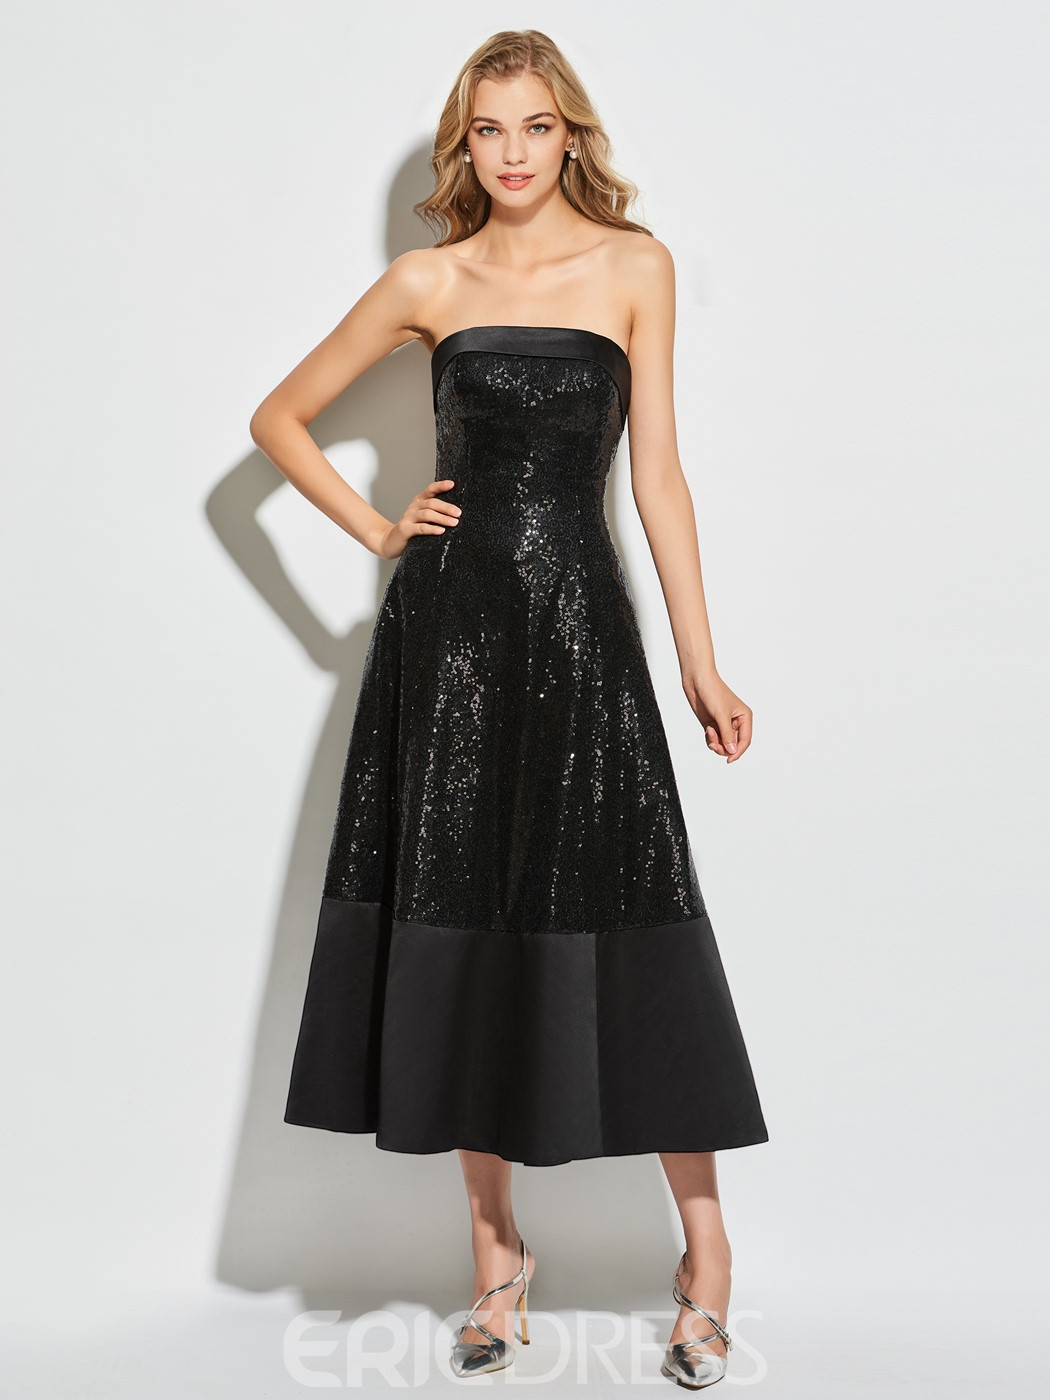 Ericdress A Line Strapless Sequin Tea Length Cocktail Dress 12976431 ...